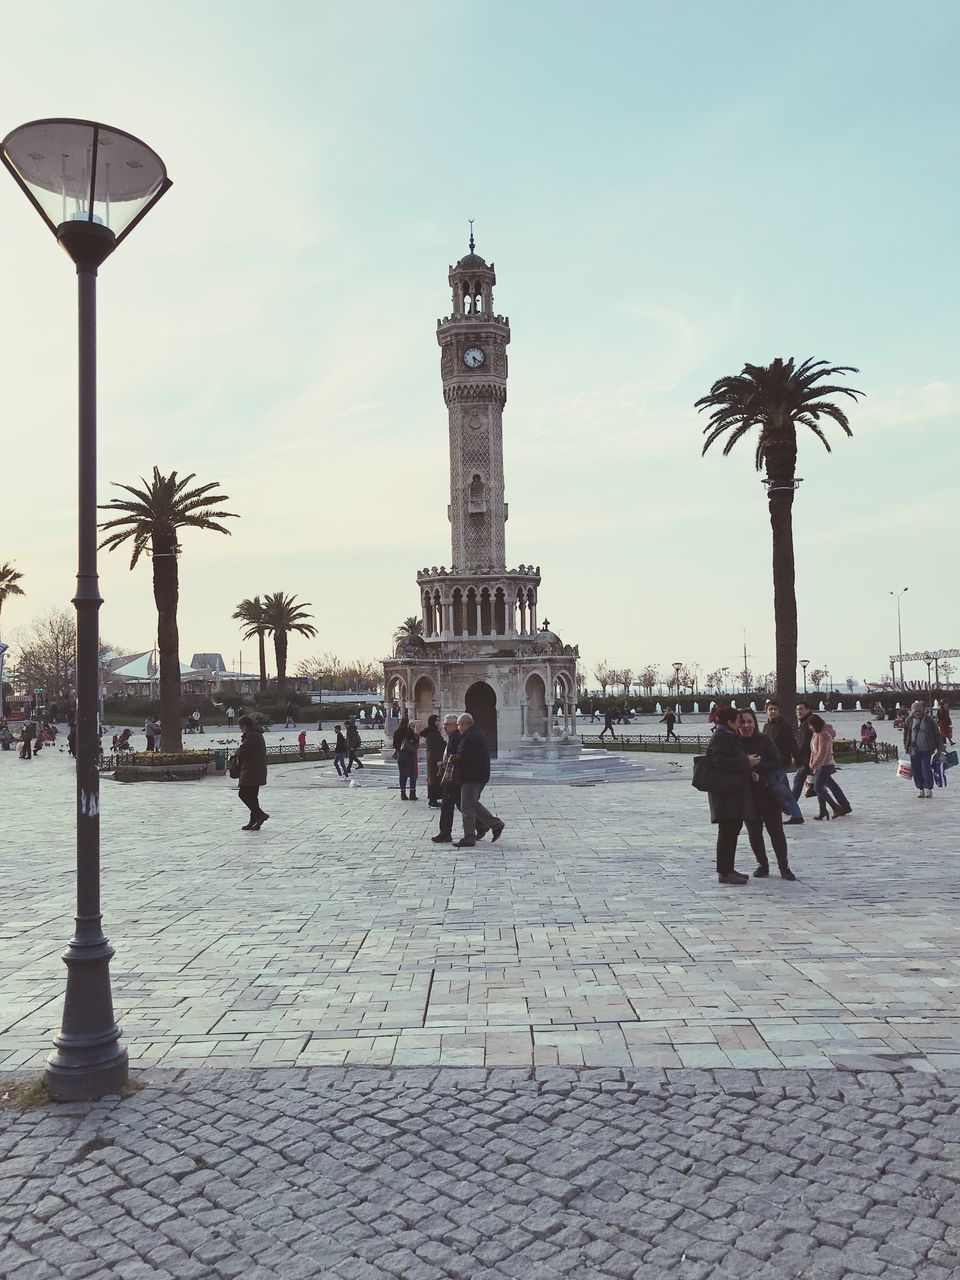 architecture, building exterior, sky, group of people, city, built structure, street, tourism, real people, travel destinations, crowd, travel, large group of people, history, cobblestone, the past, nature, lifestyles, city life, palm tree, outdoors, paving stone